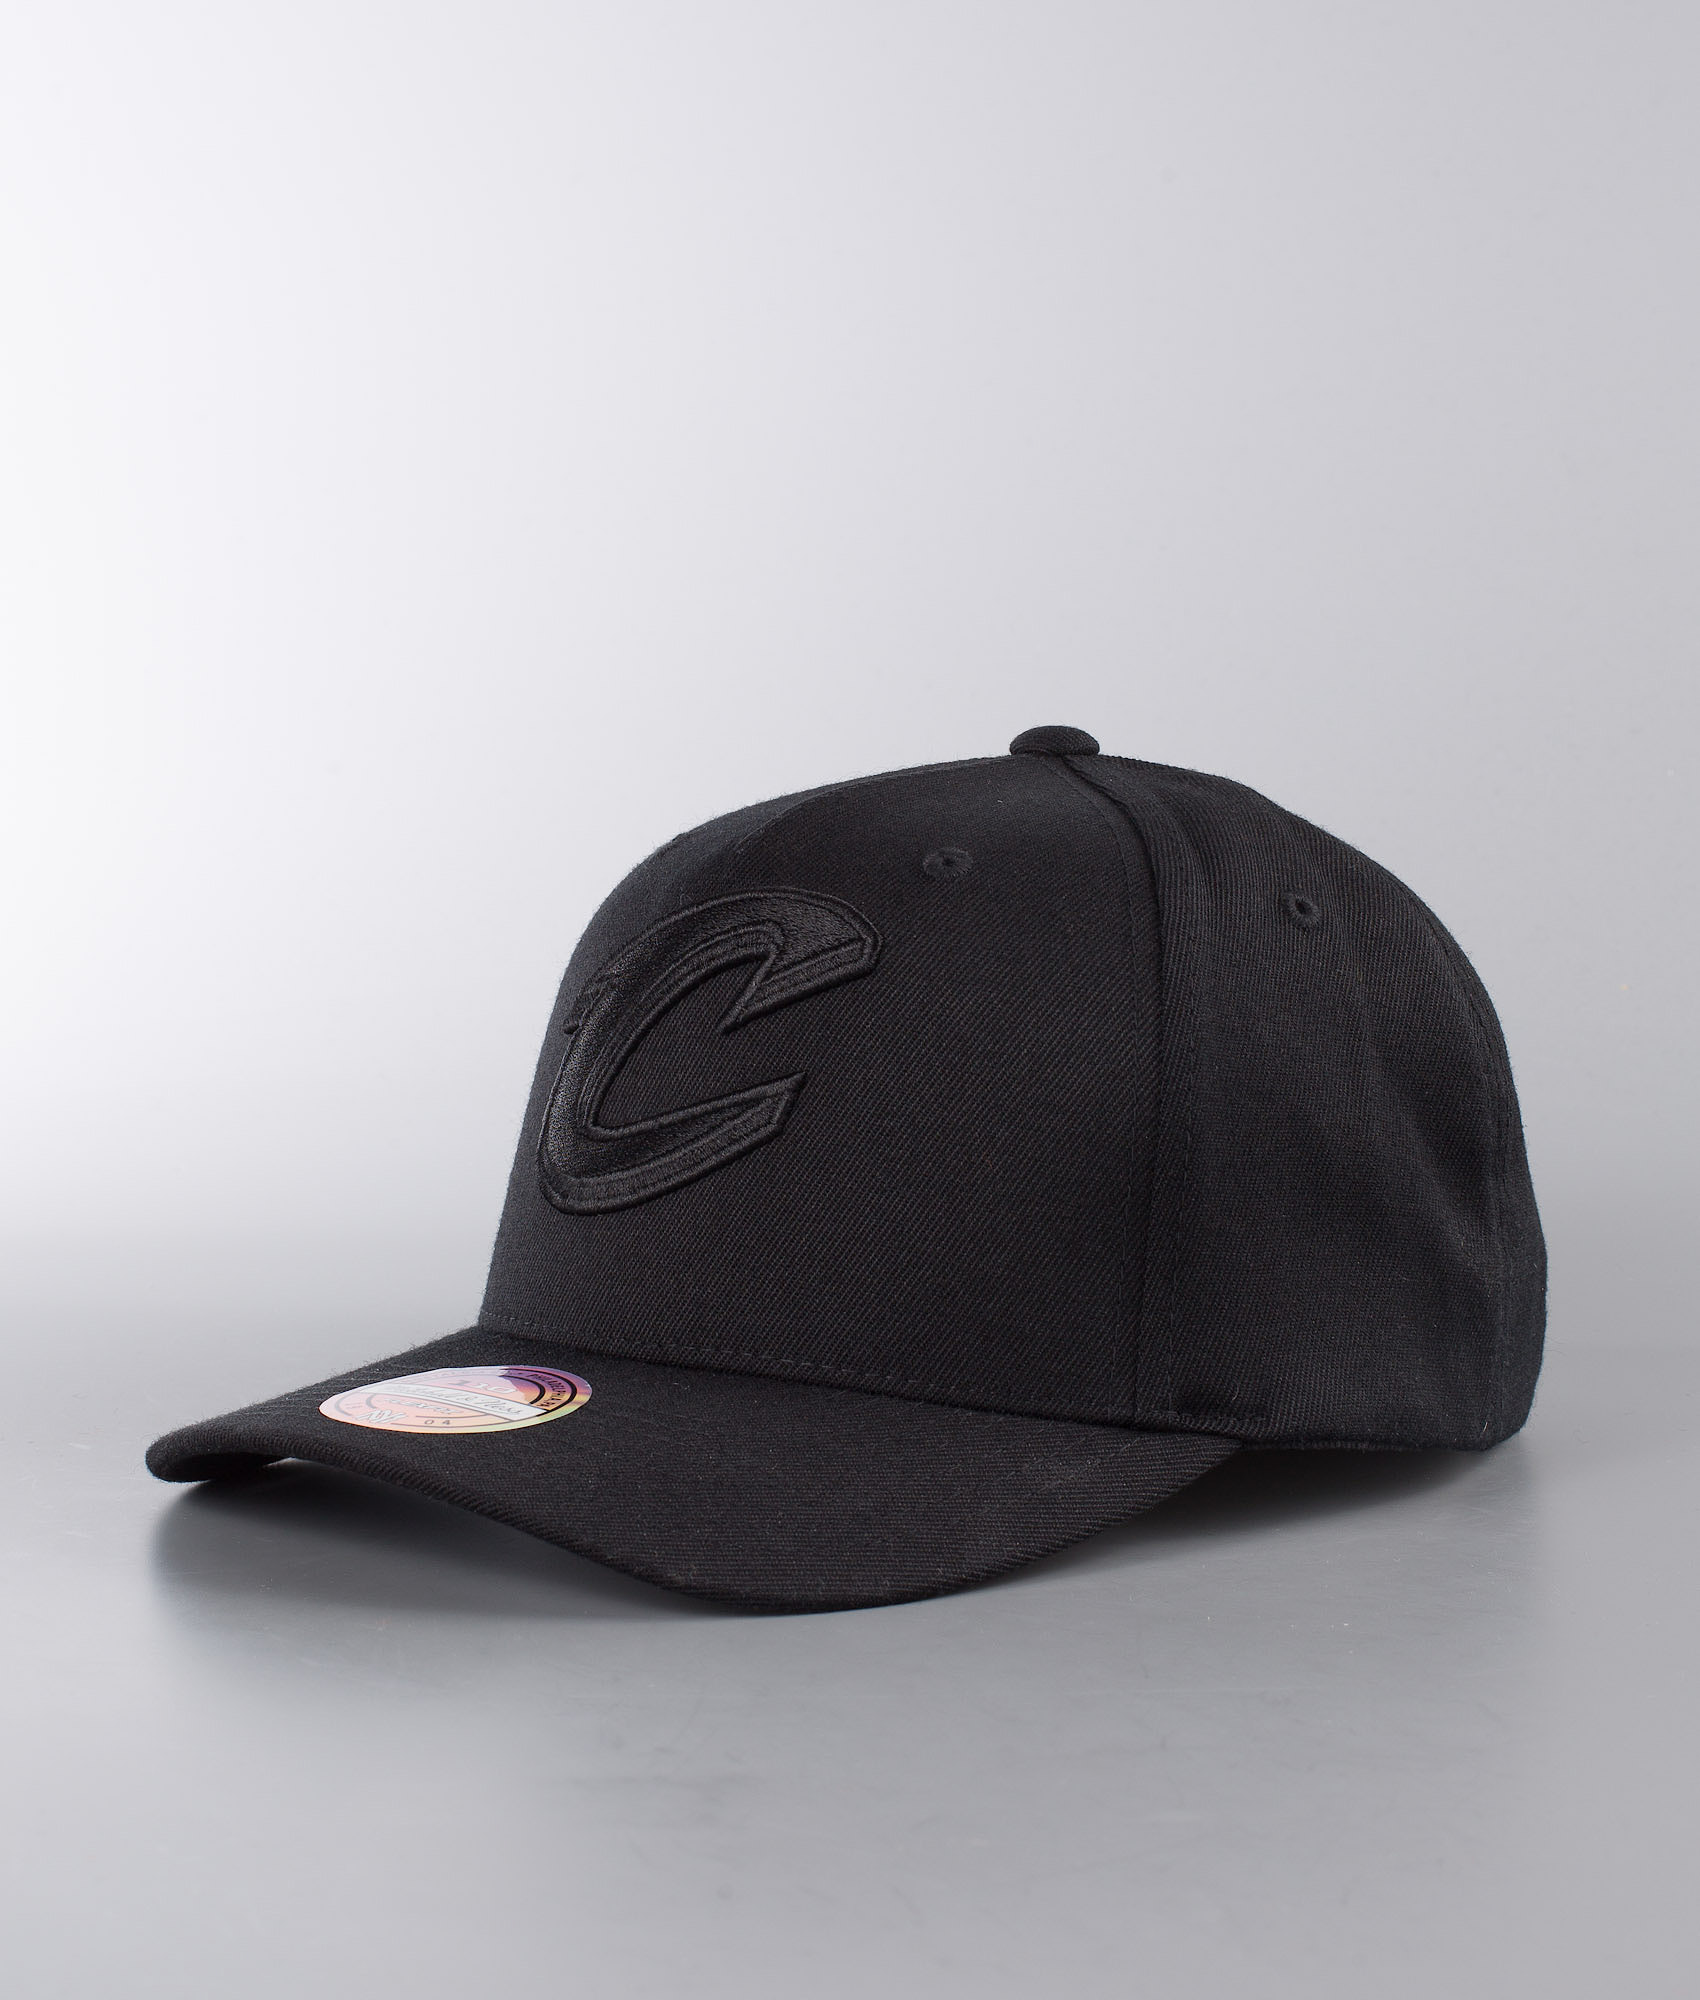 287a5b9f270d4 Mitchell and Ness Outline Logo 110 - Cleveland Cavaliers Cap Black ...